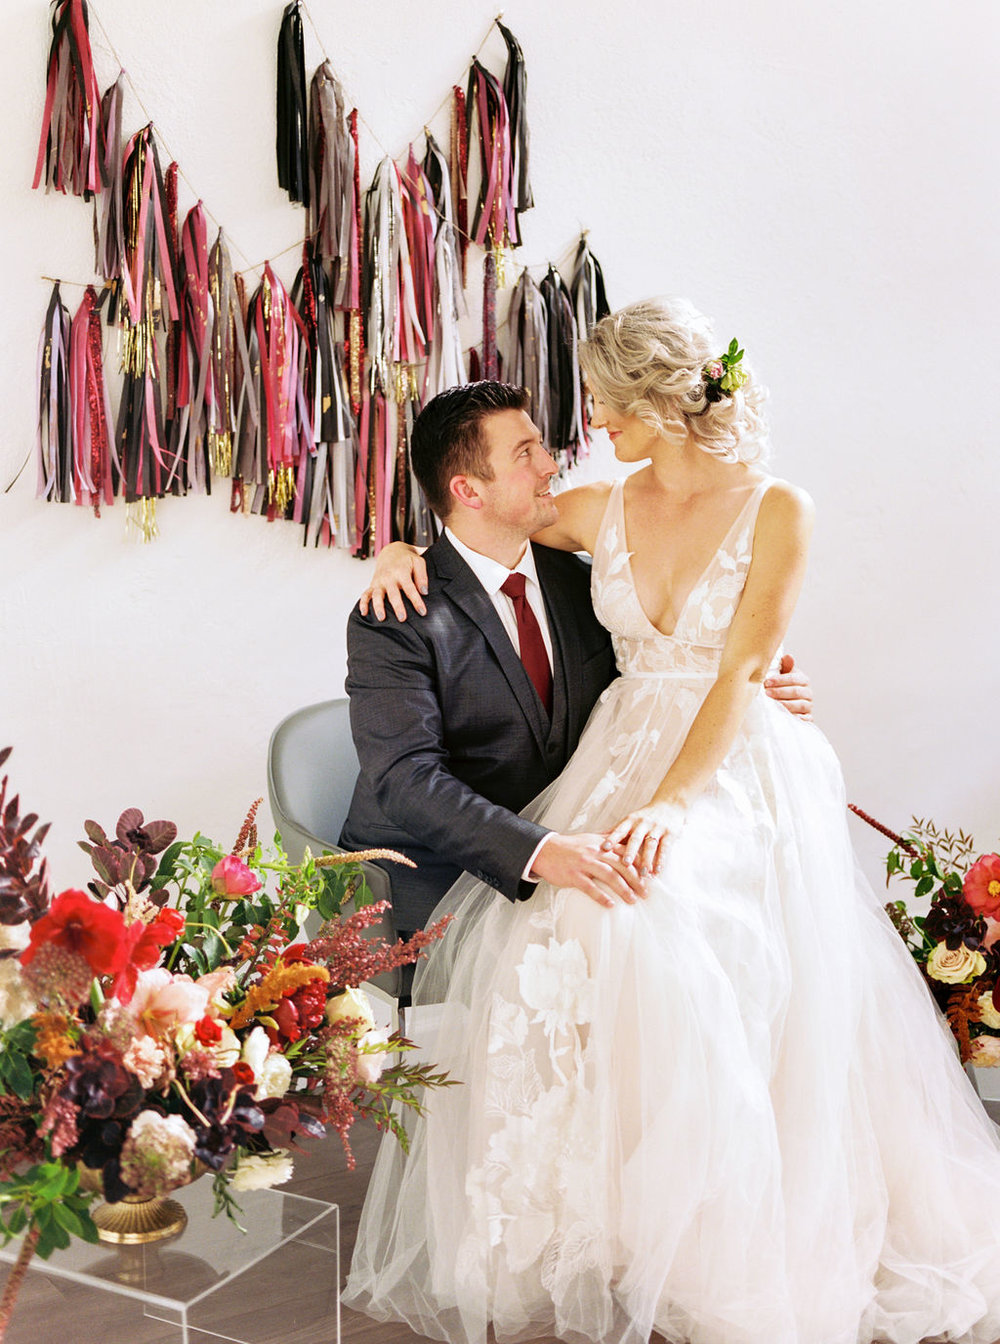 Tassel Garlands for wedding venue decoration